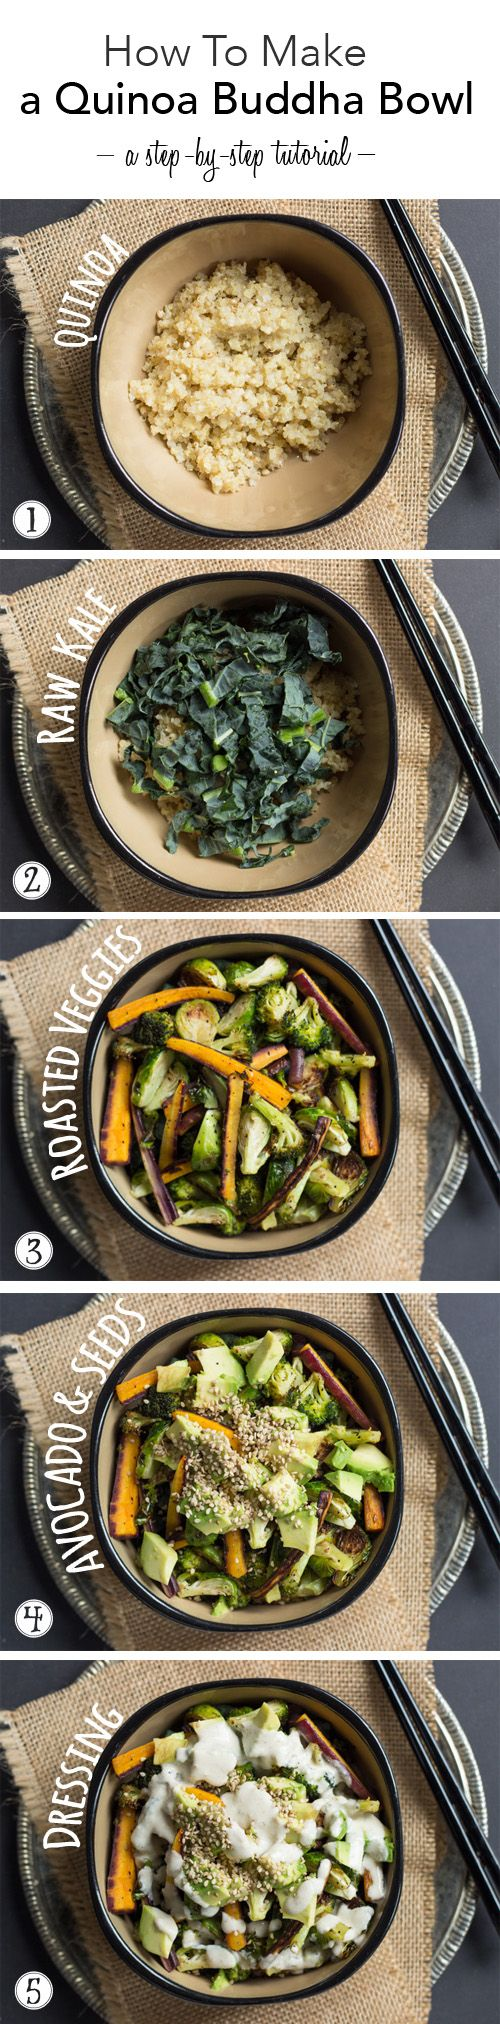 How to make the perfect Quinoa Buddha Bowl - a recipe & a tutorial in ...